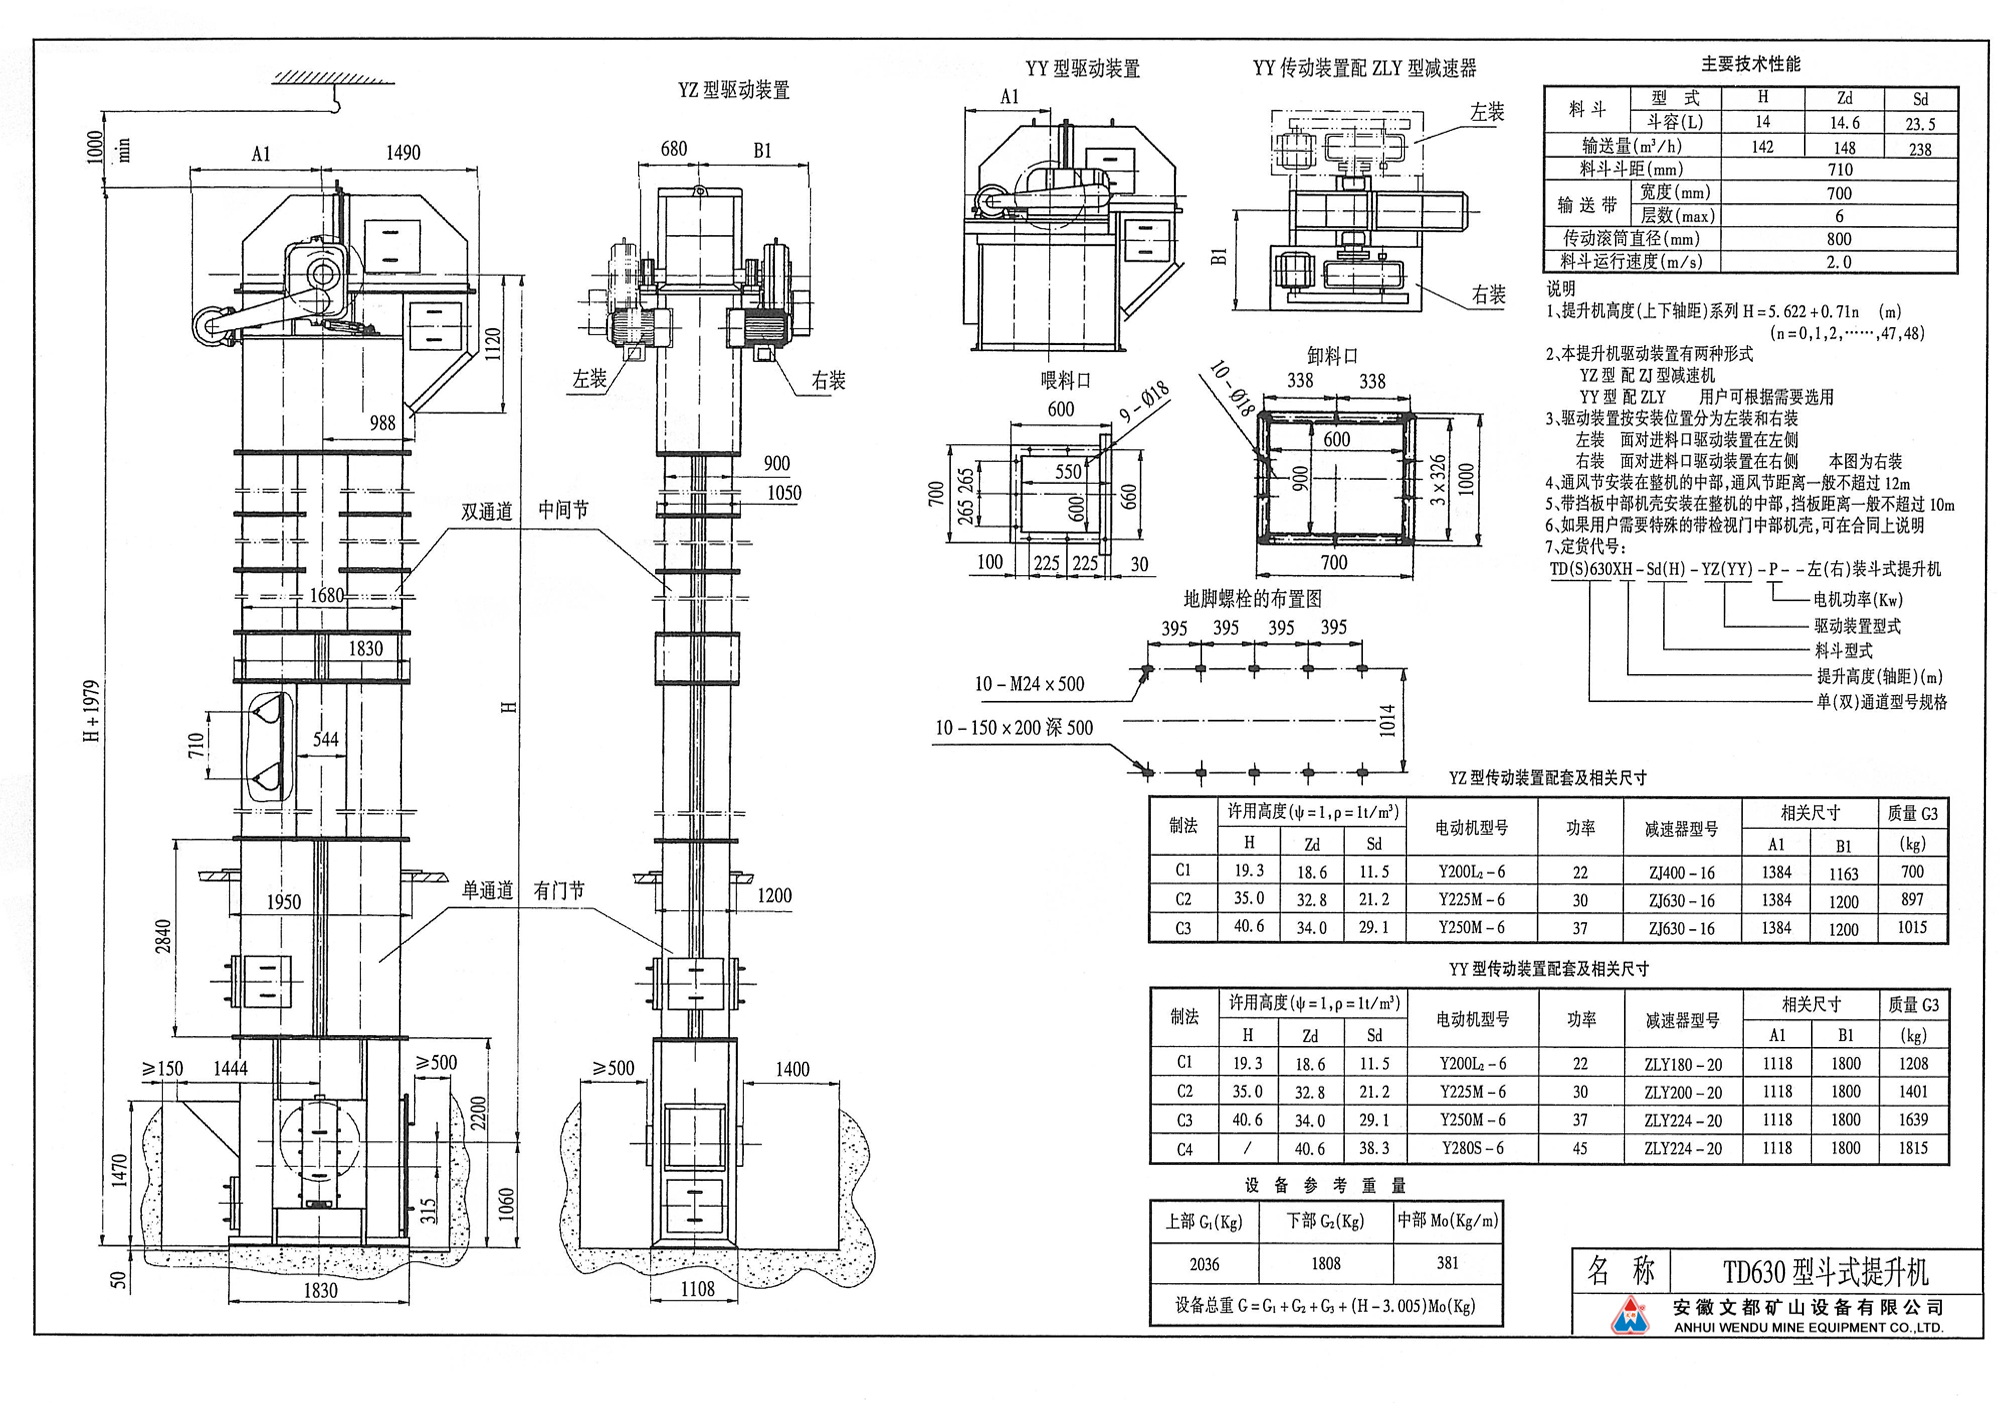 Home elevator dimensions - Previous Chemical Plant Tape Machine